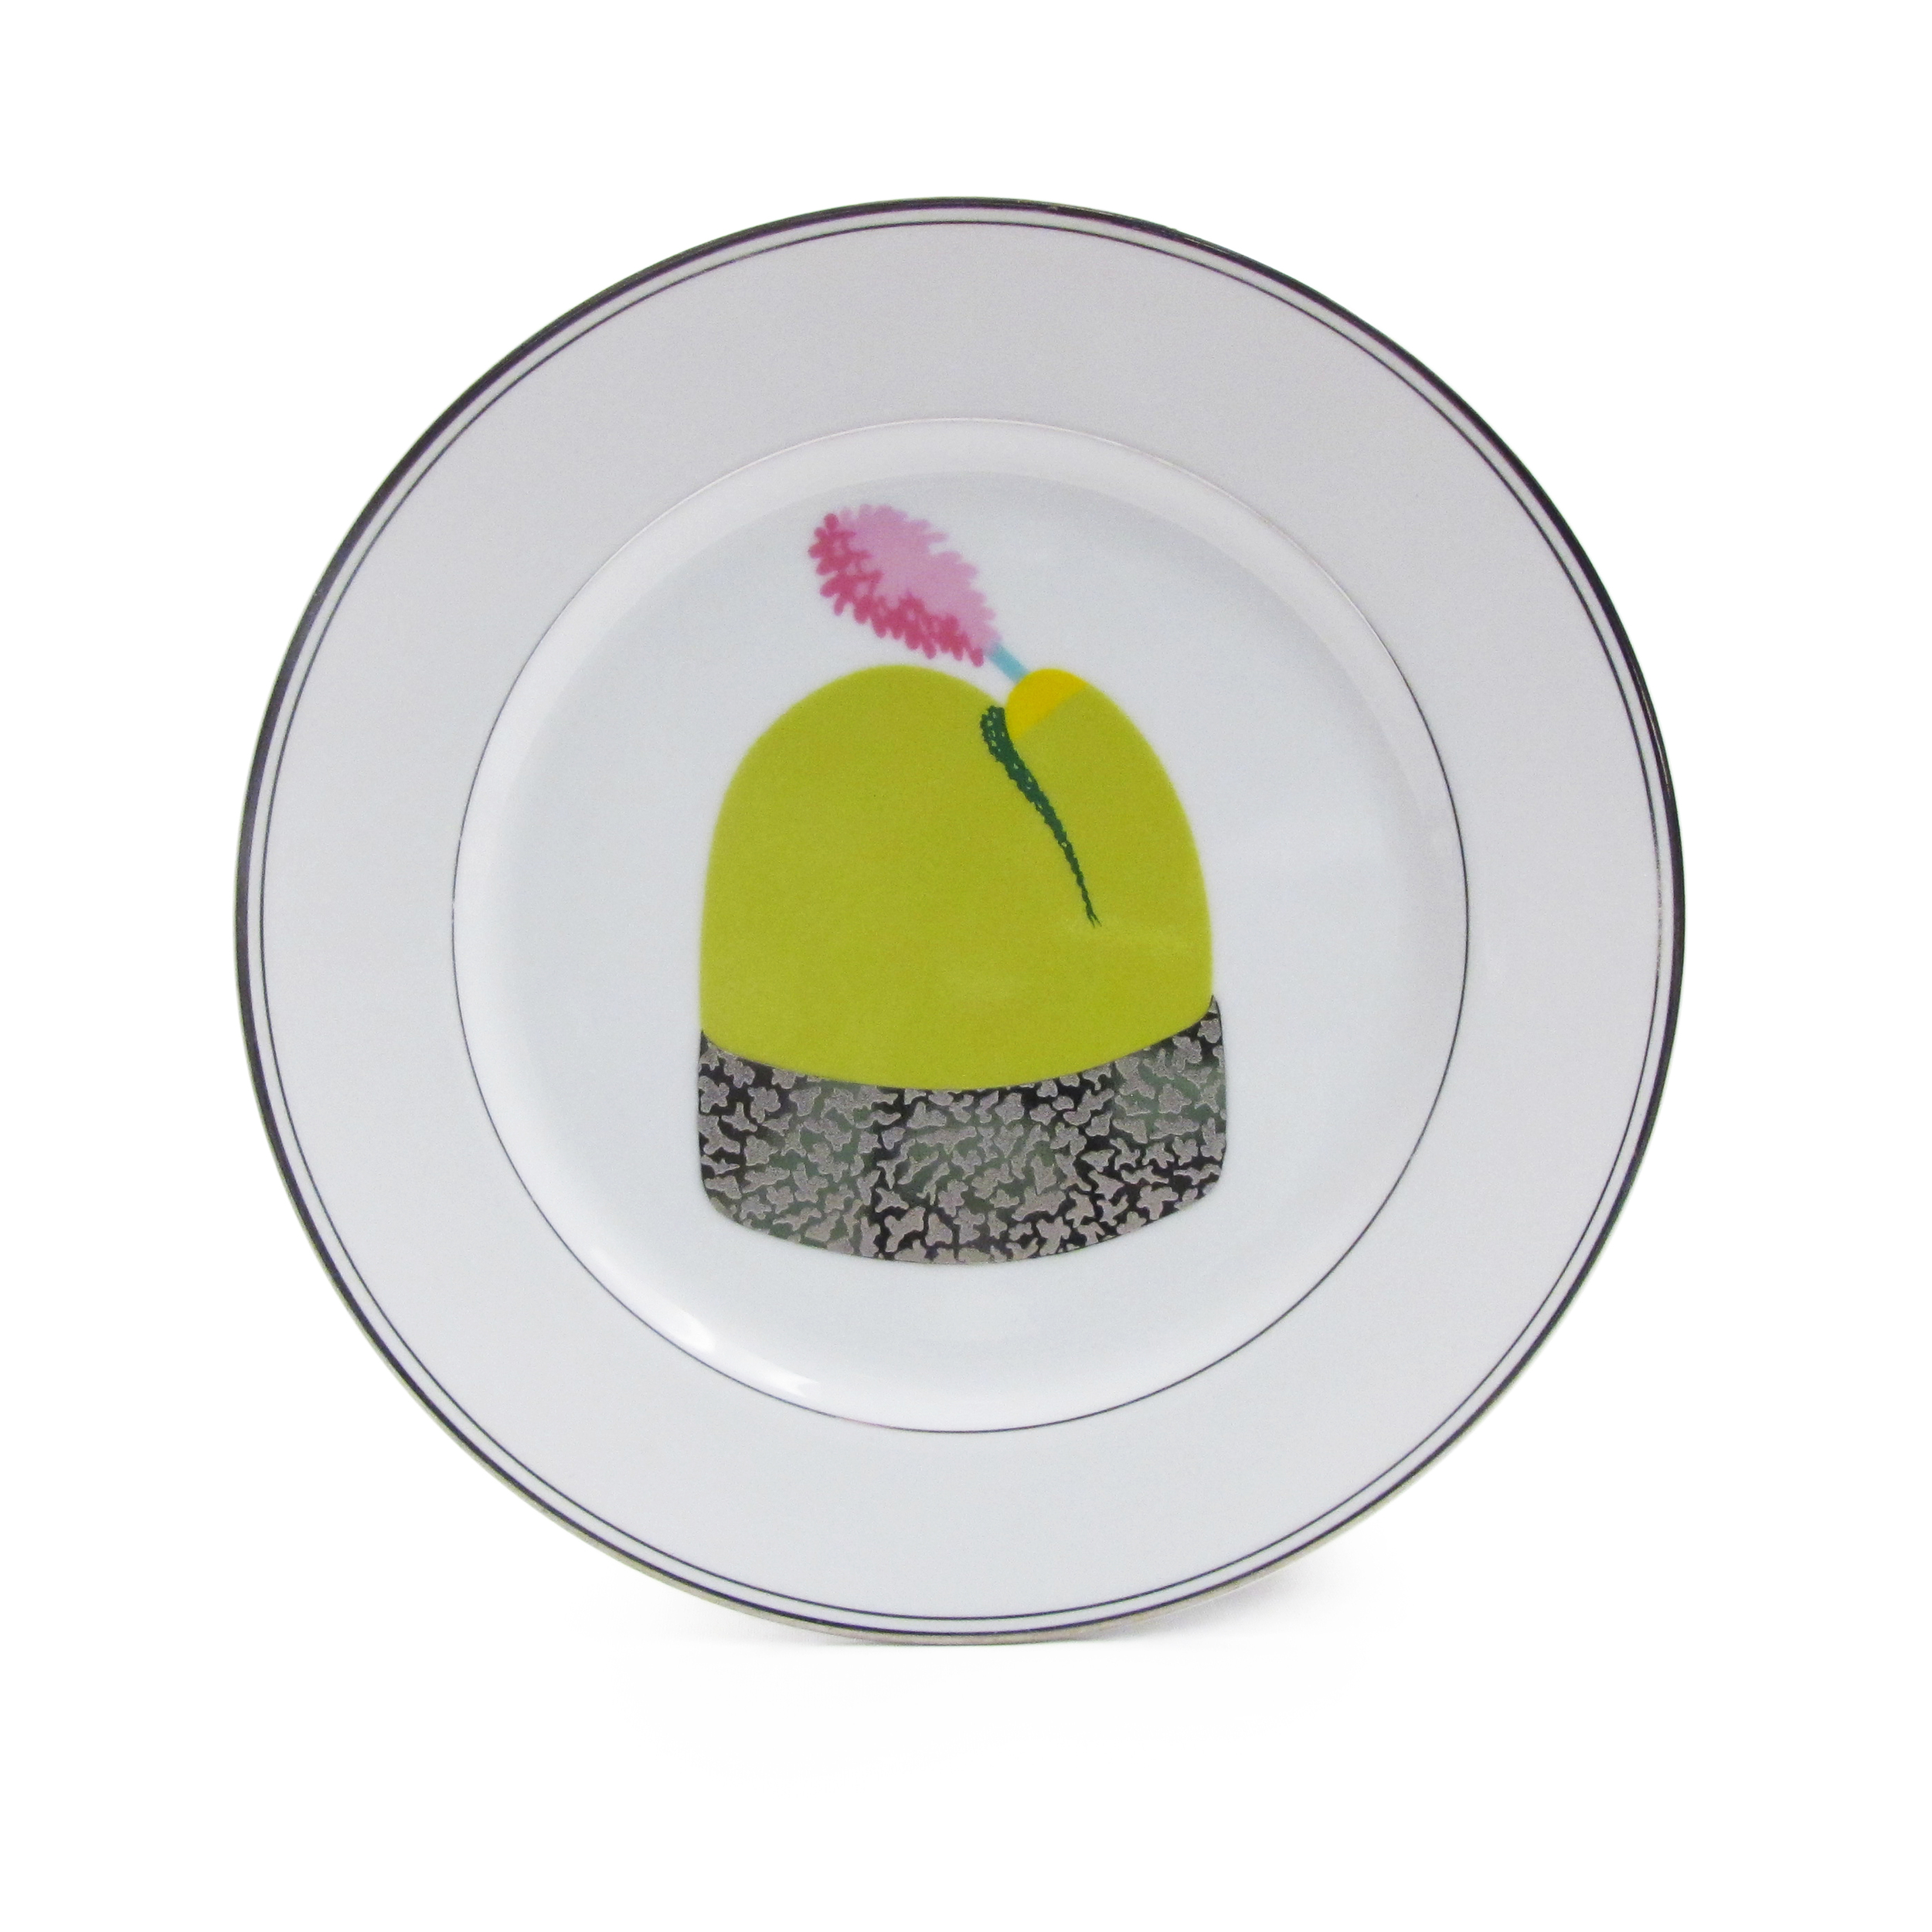 Decal Plate I   Bone china plate, decals, luster